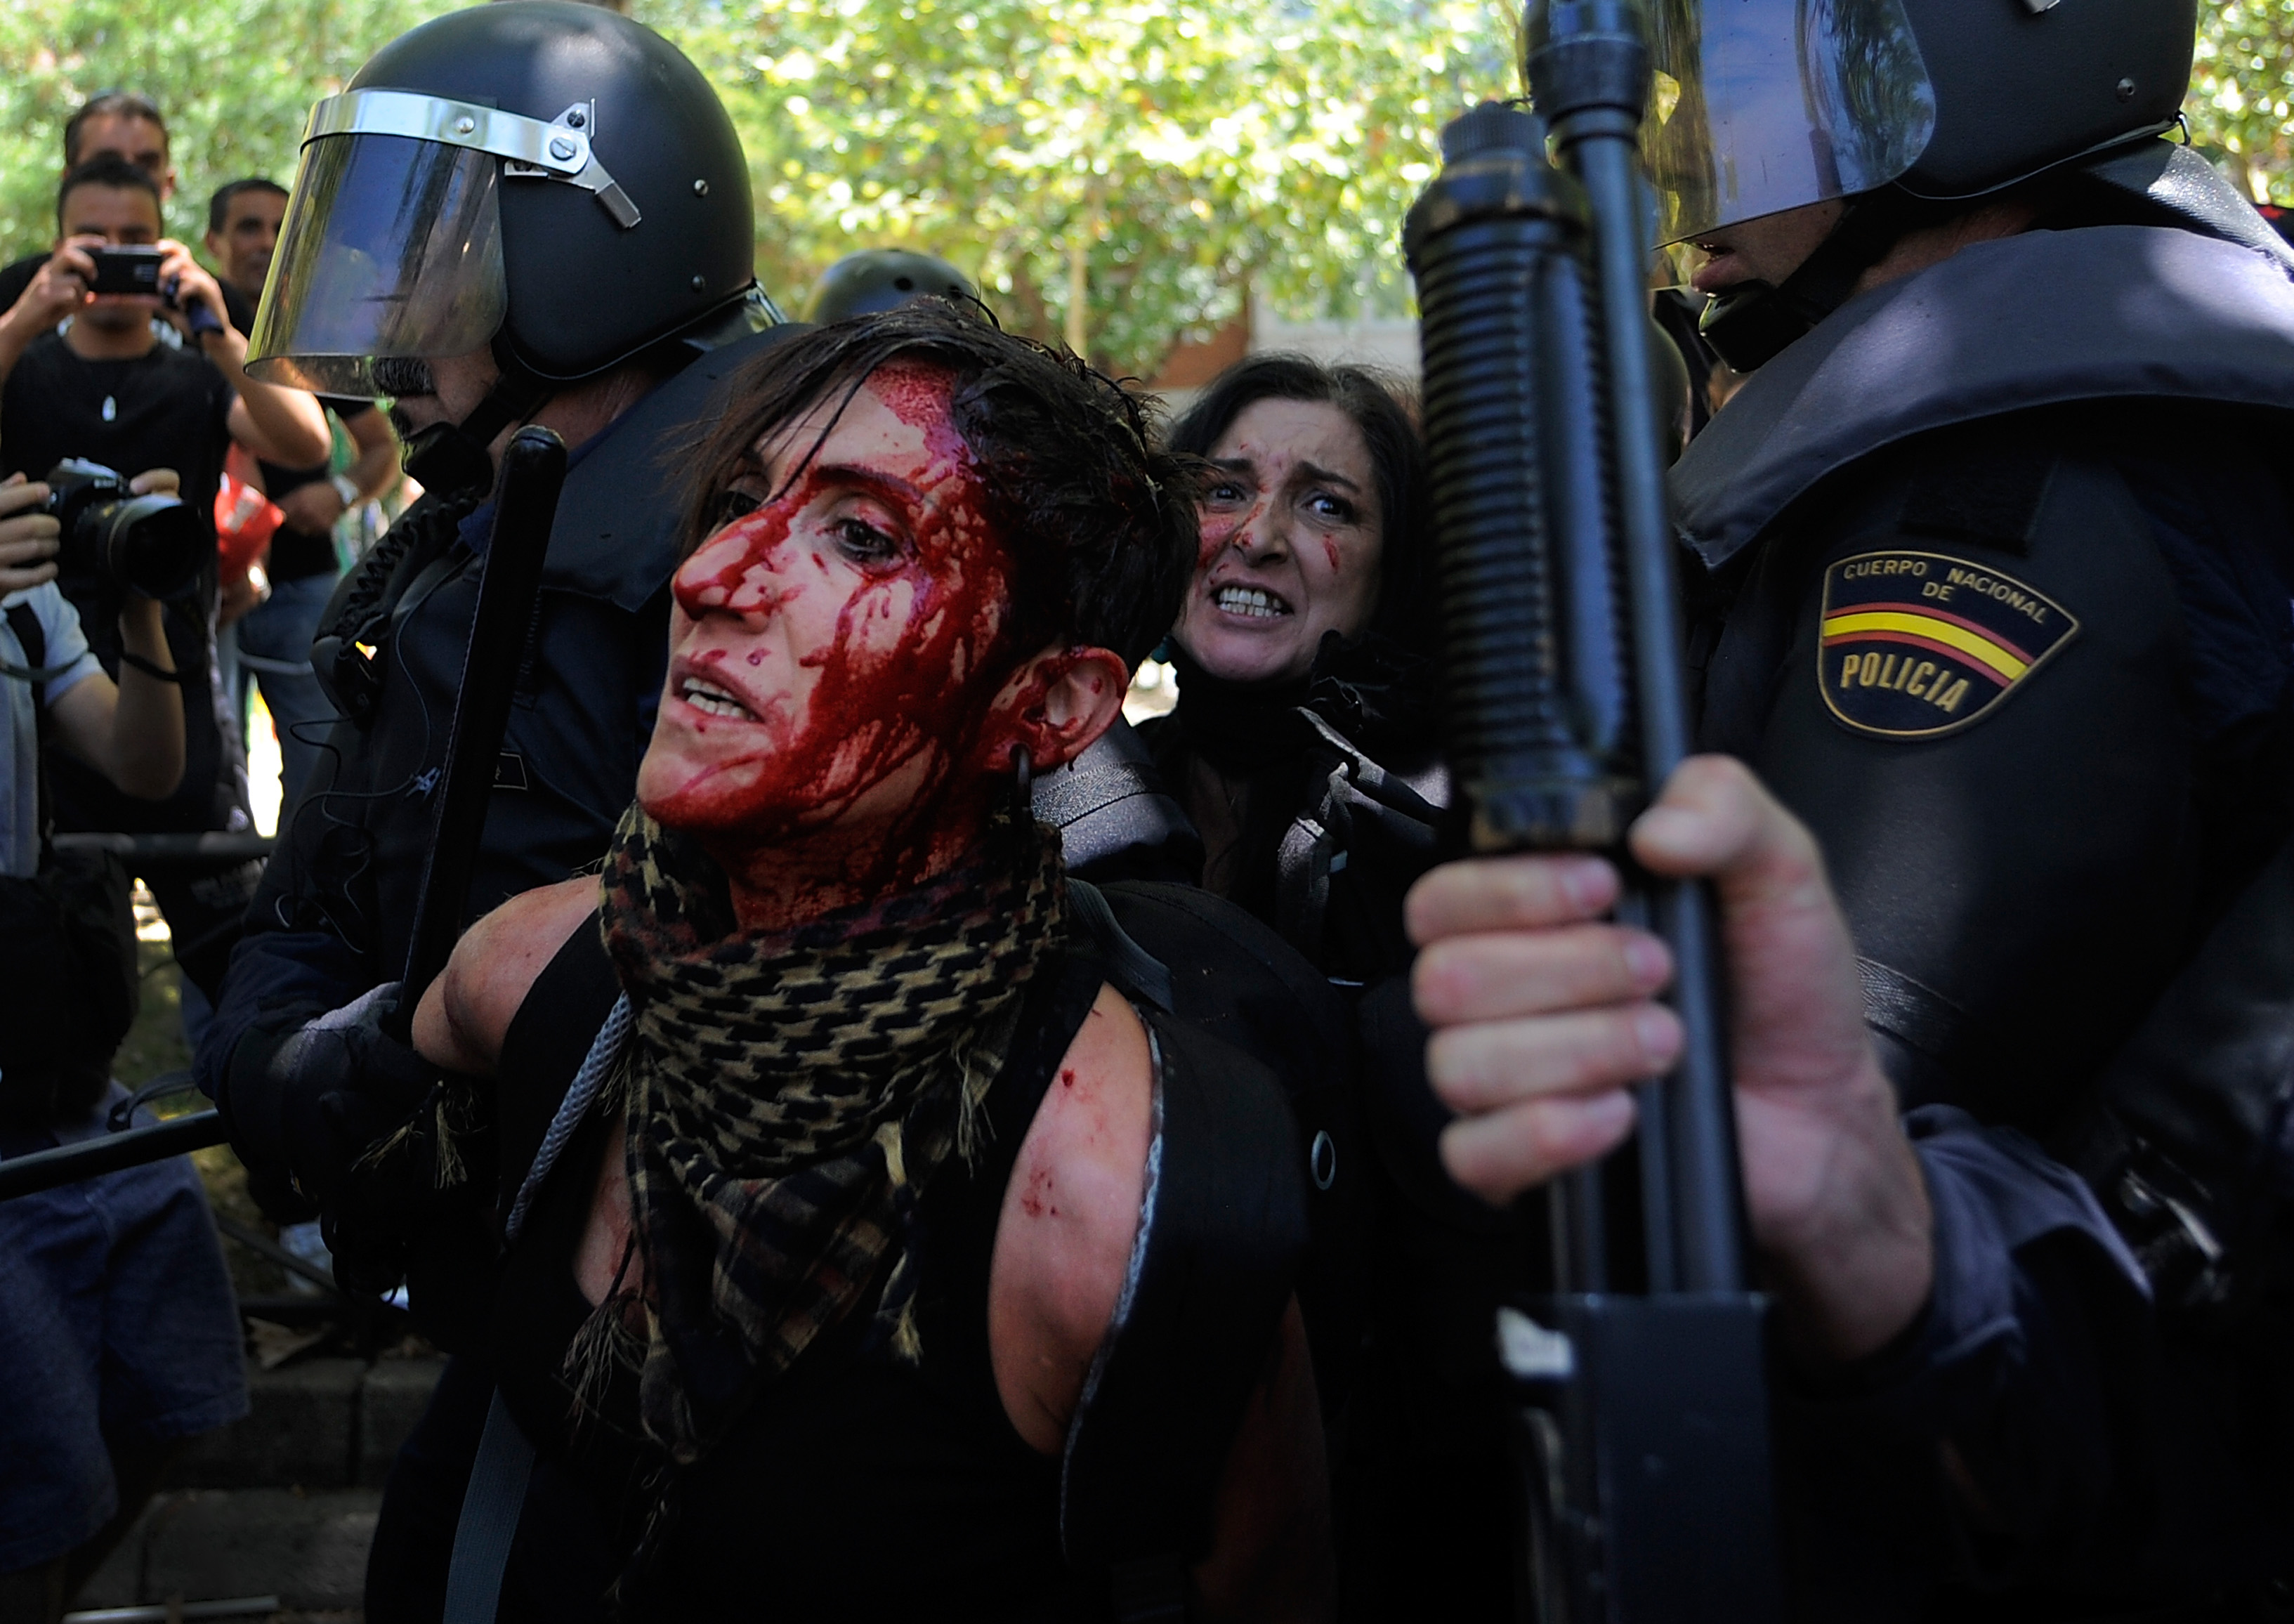 Bloodied girl in Miners demo